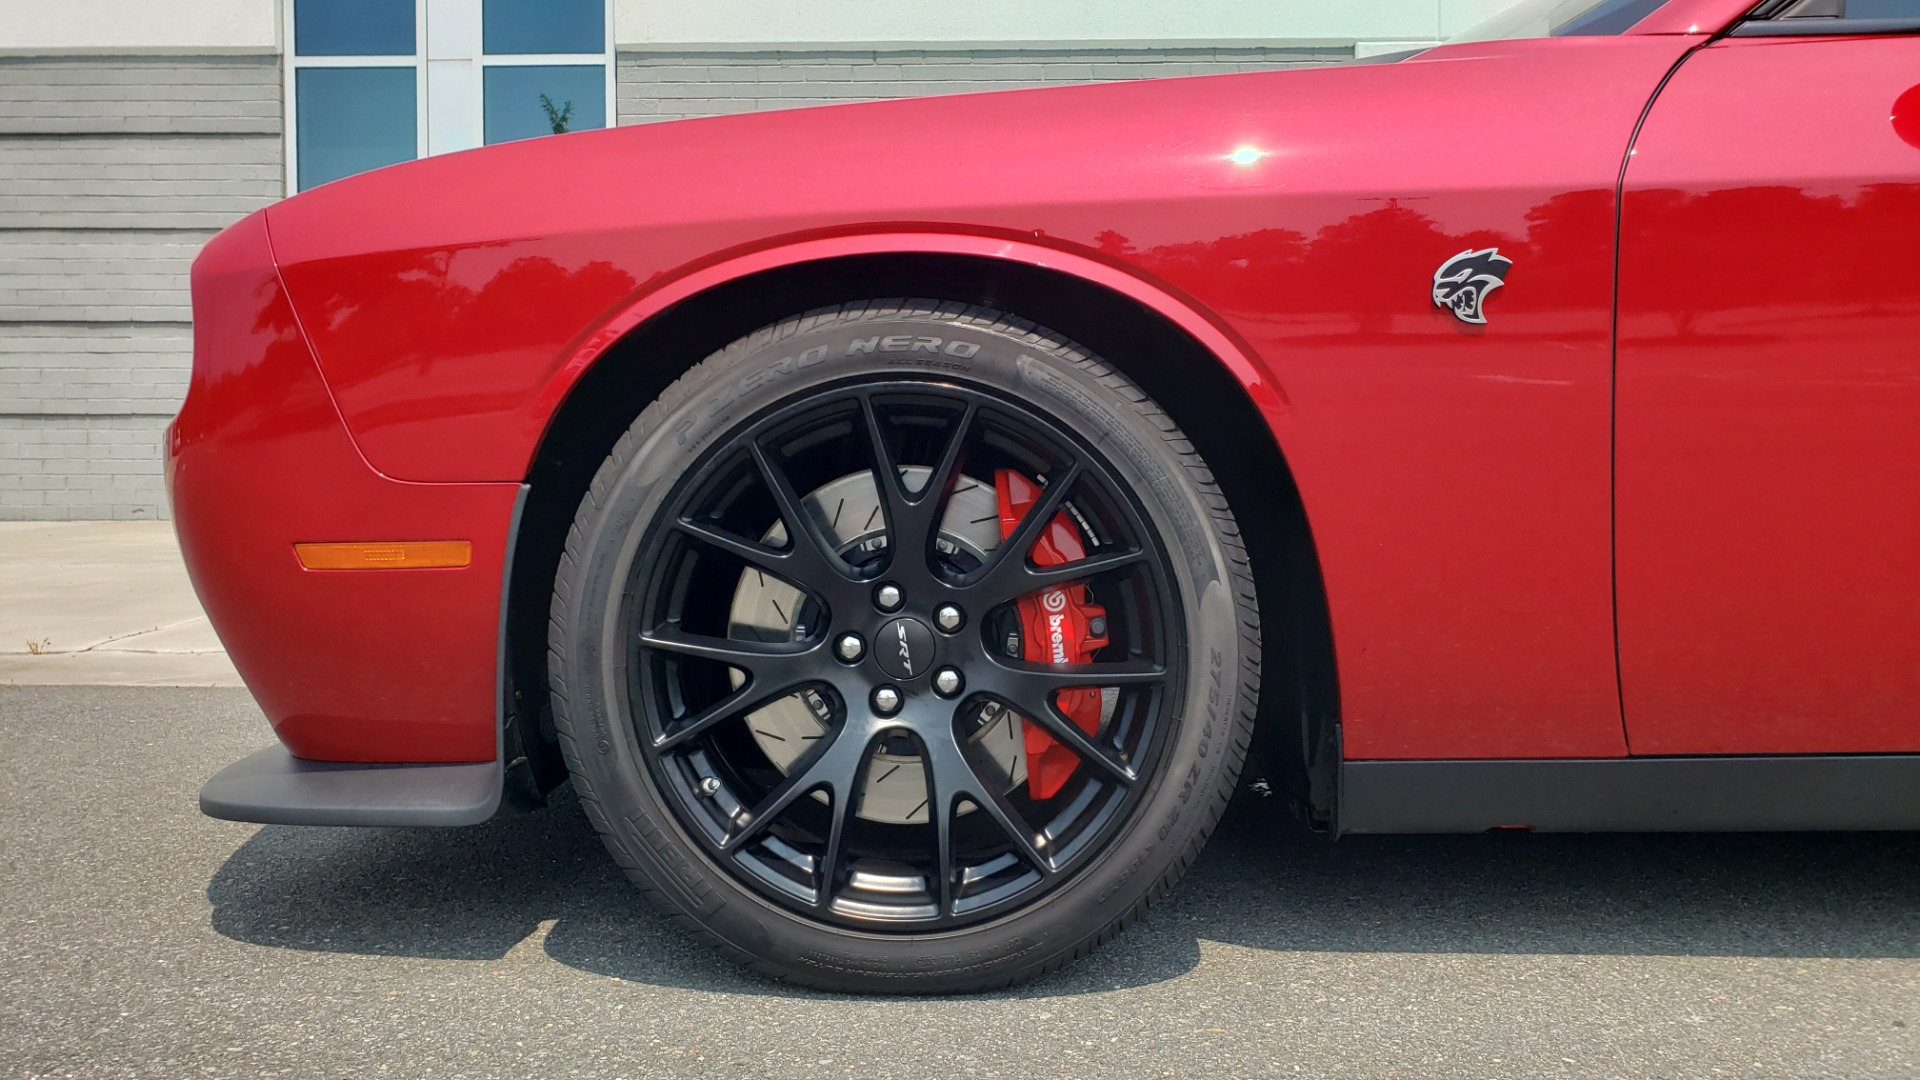 Used 2016 Dodge CHALLENGER SRT HELLCAT 707HP COUPE / AUTO / NAV / SUNROOF / H/K SND / REARVIEW for sale $60,995 at Formula Imports in Charlotte NC 28227 79